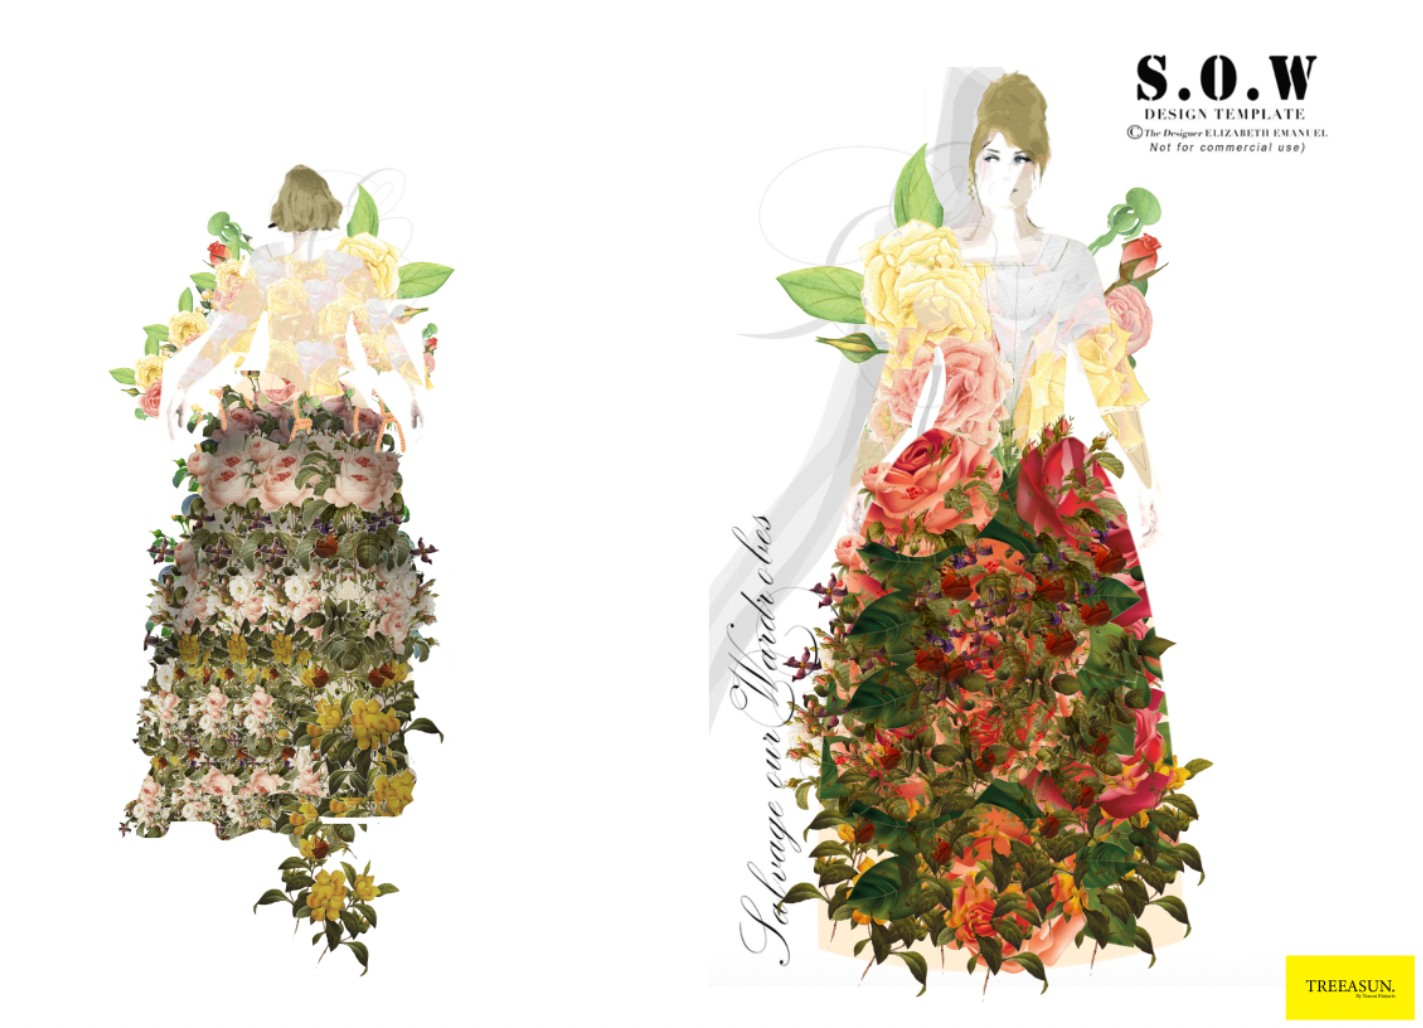 Marie Antoinette-inspired floral dress design by Yianni Biniaris